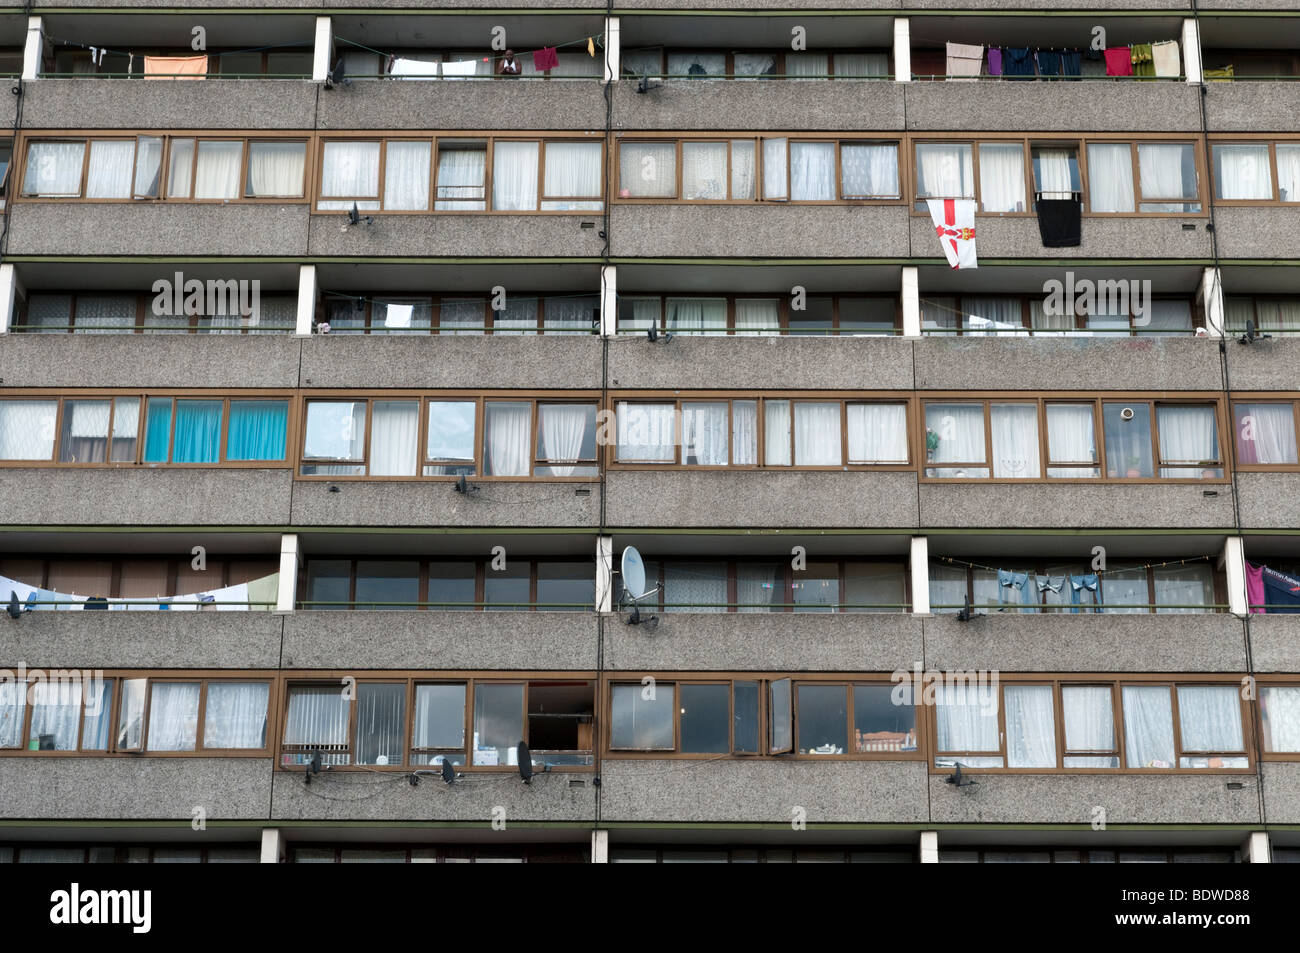 Council flats in South London, England, UK - Stock Image